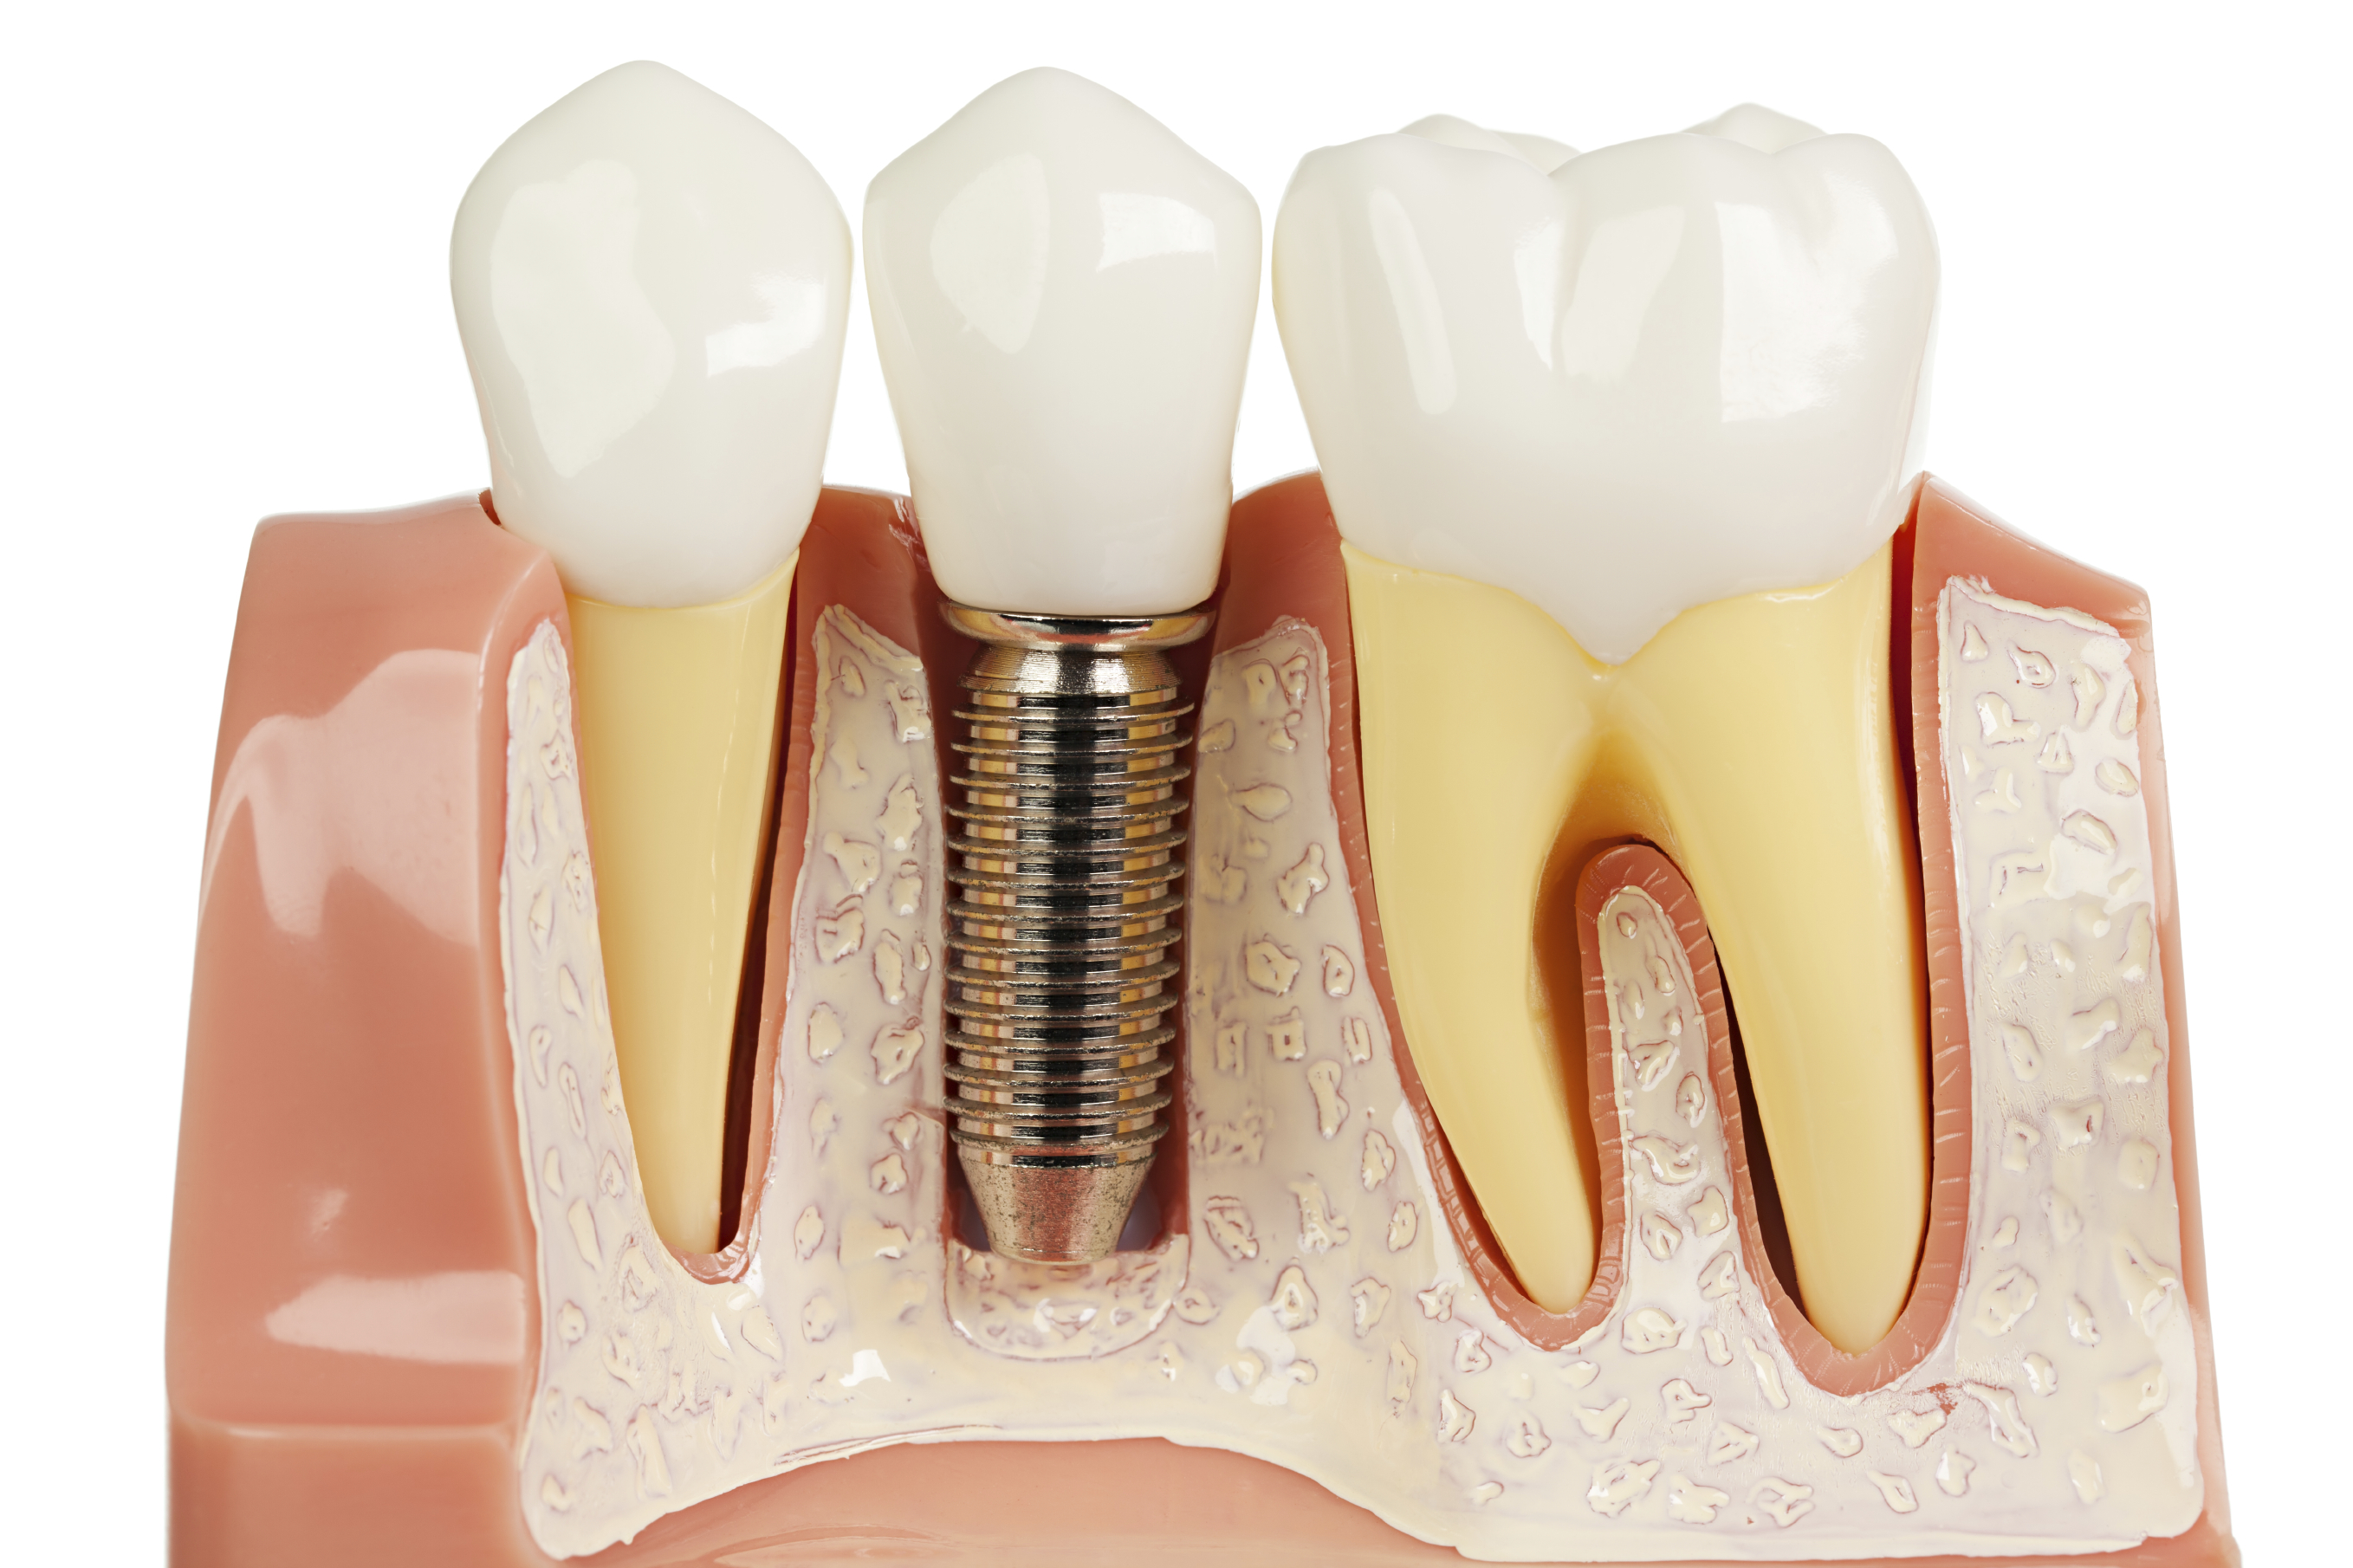 81 Best Dental Implants Images On Pinterest Manual Guide